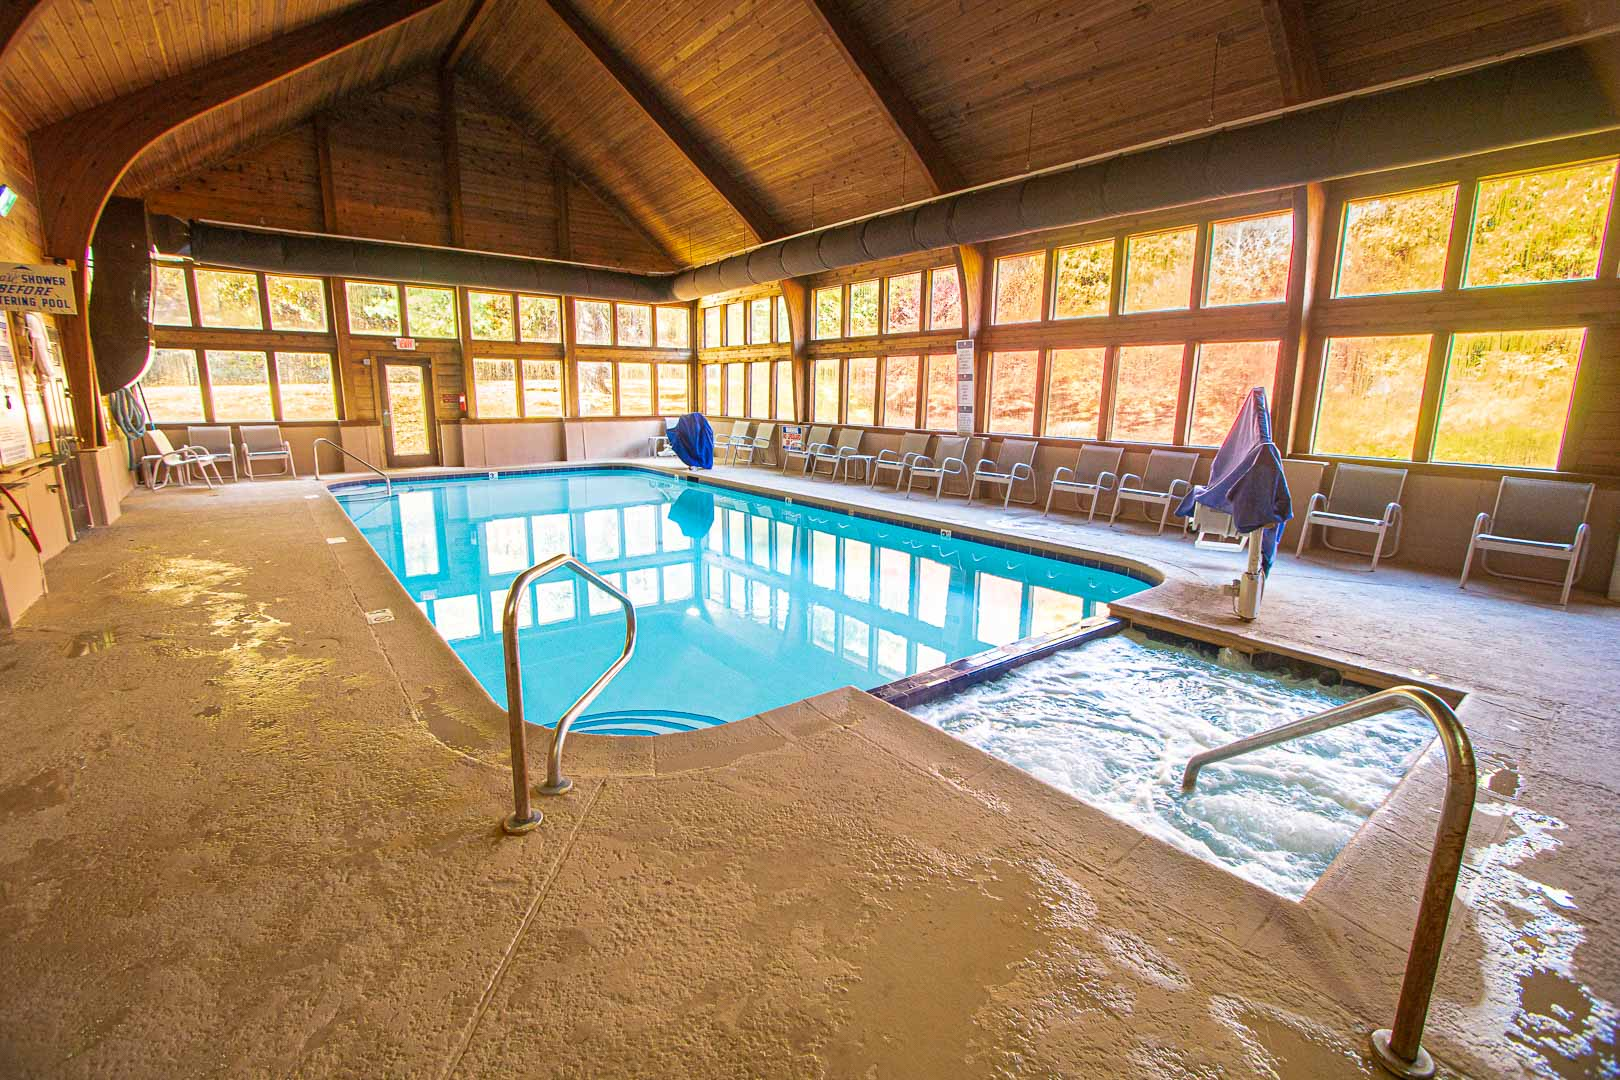 A spacious indoor swimming pool and Jacuzzi at VRI's Mountain Loft Resort in North Carolina.